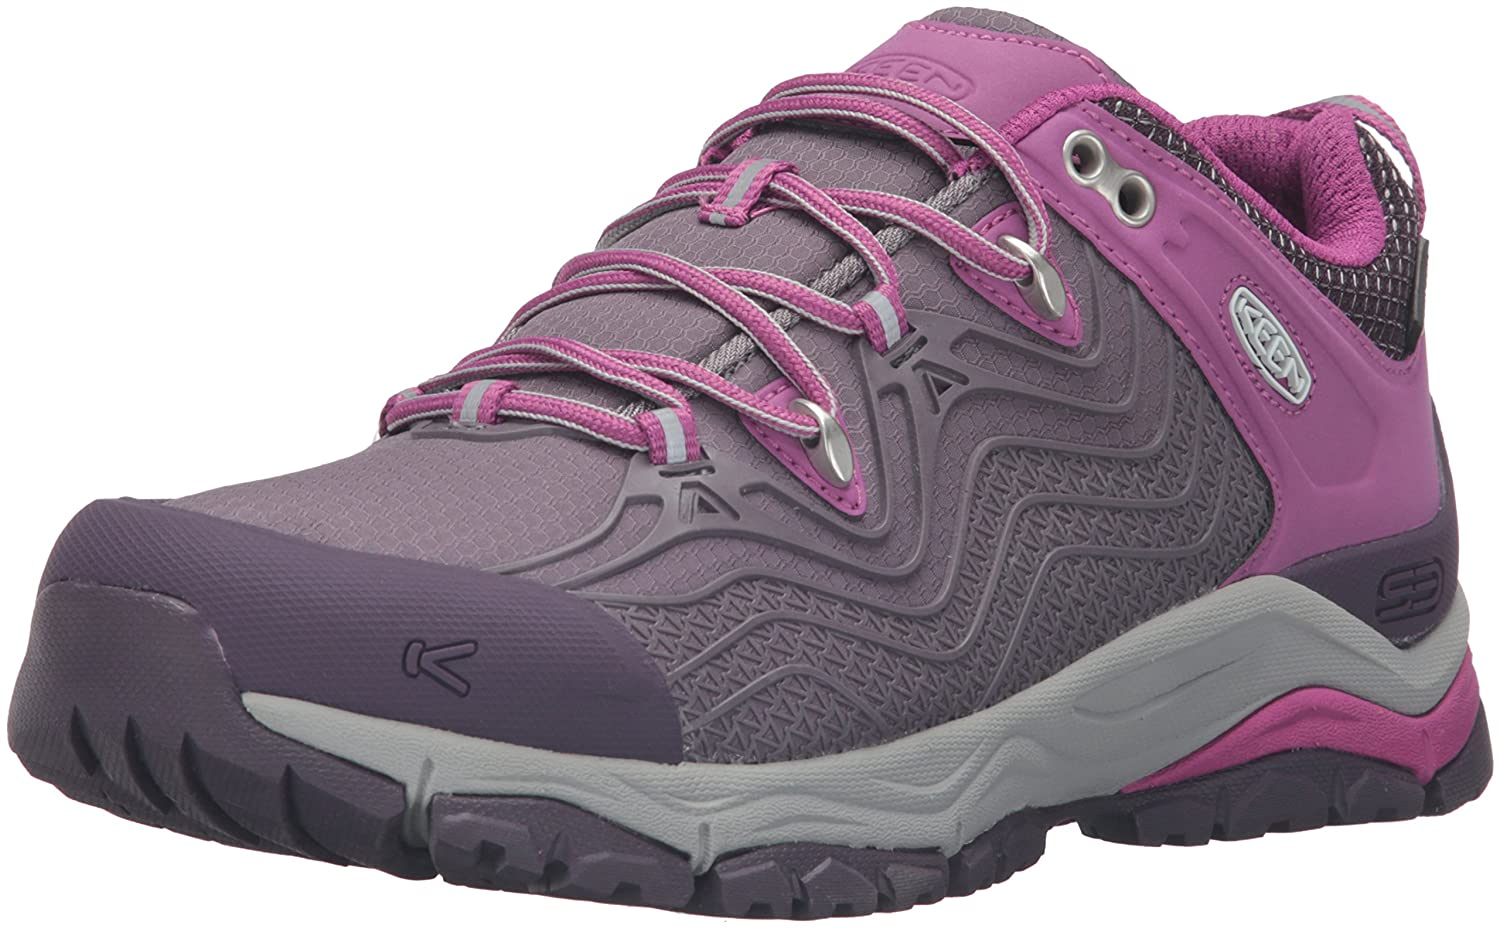 KEEN Women's Aphlex Waterproof Shoe B019FCA99K 5.5 B(M) US|Plum/Shark